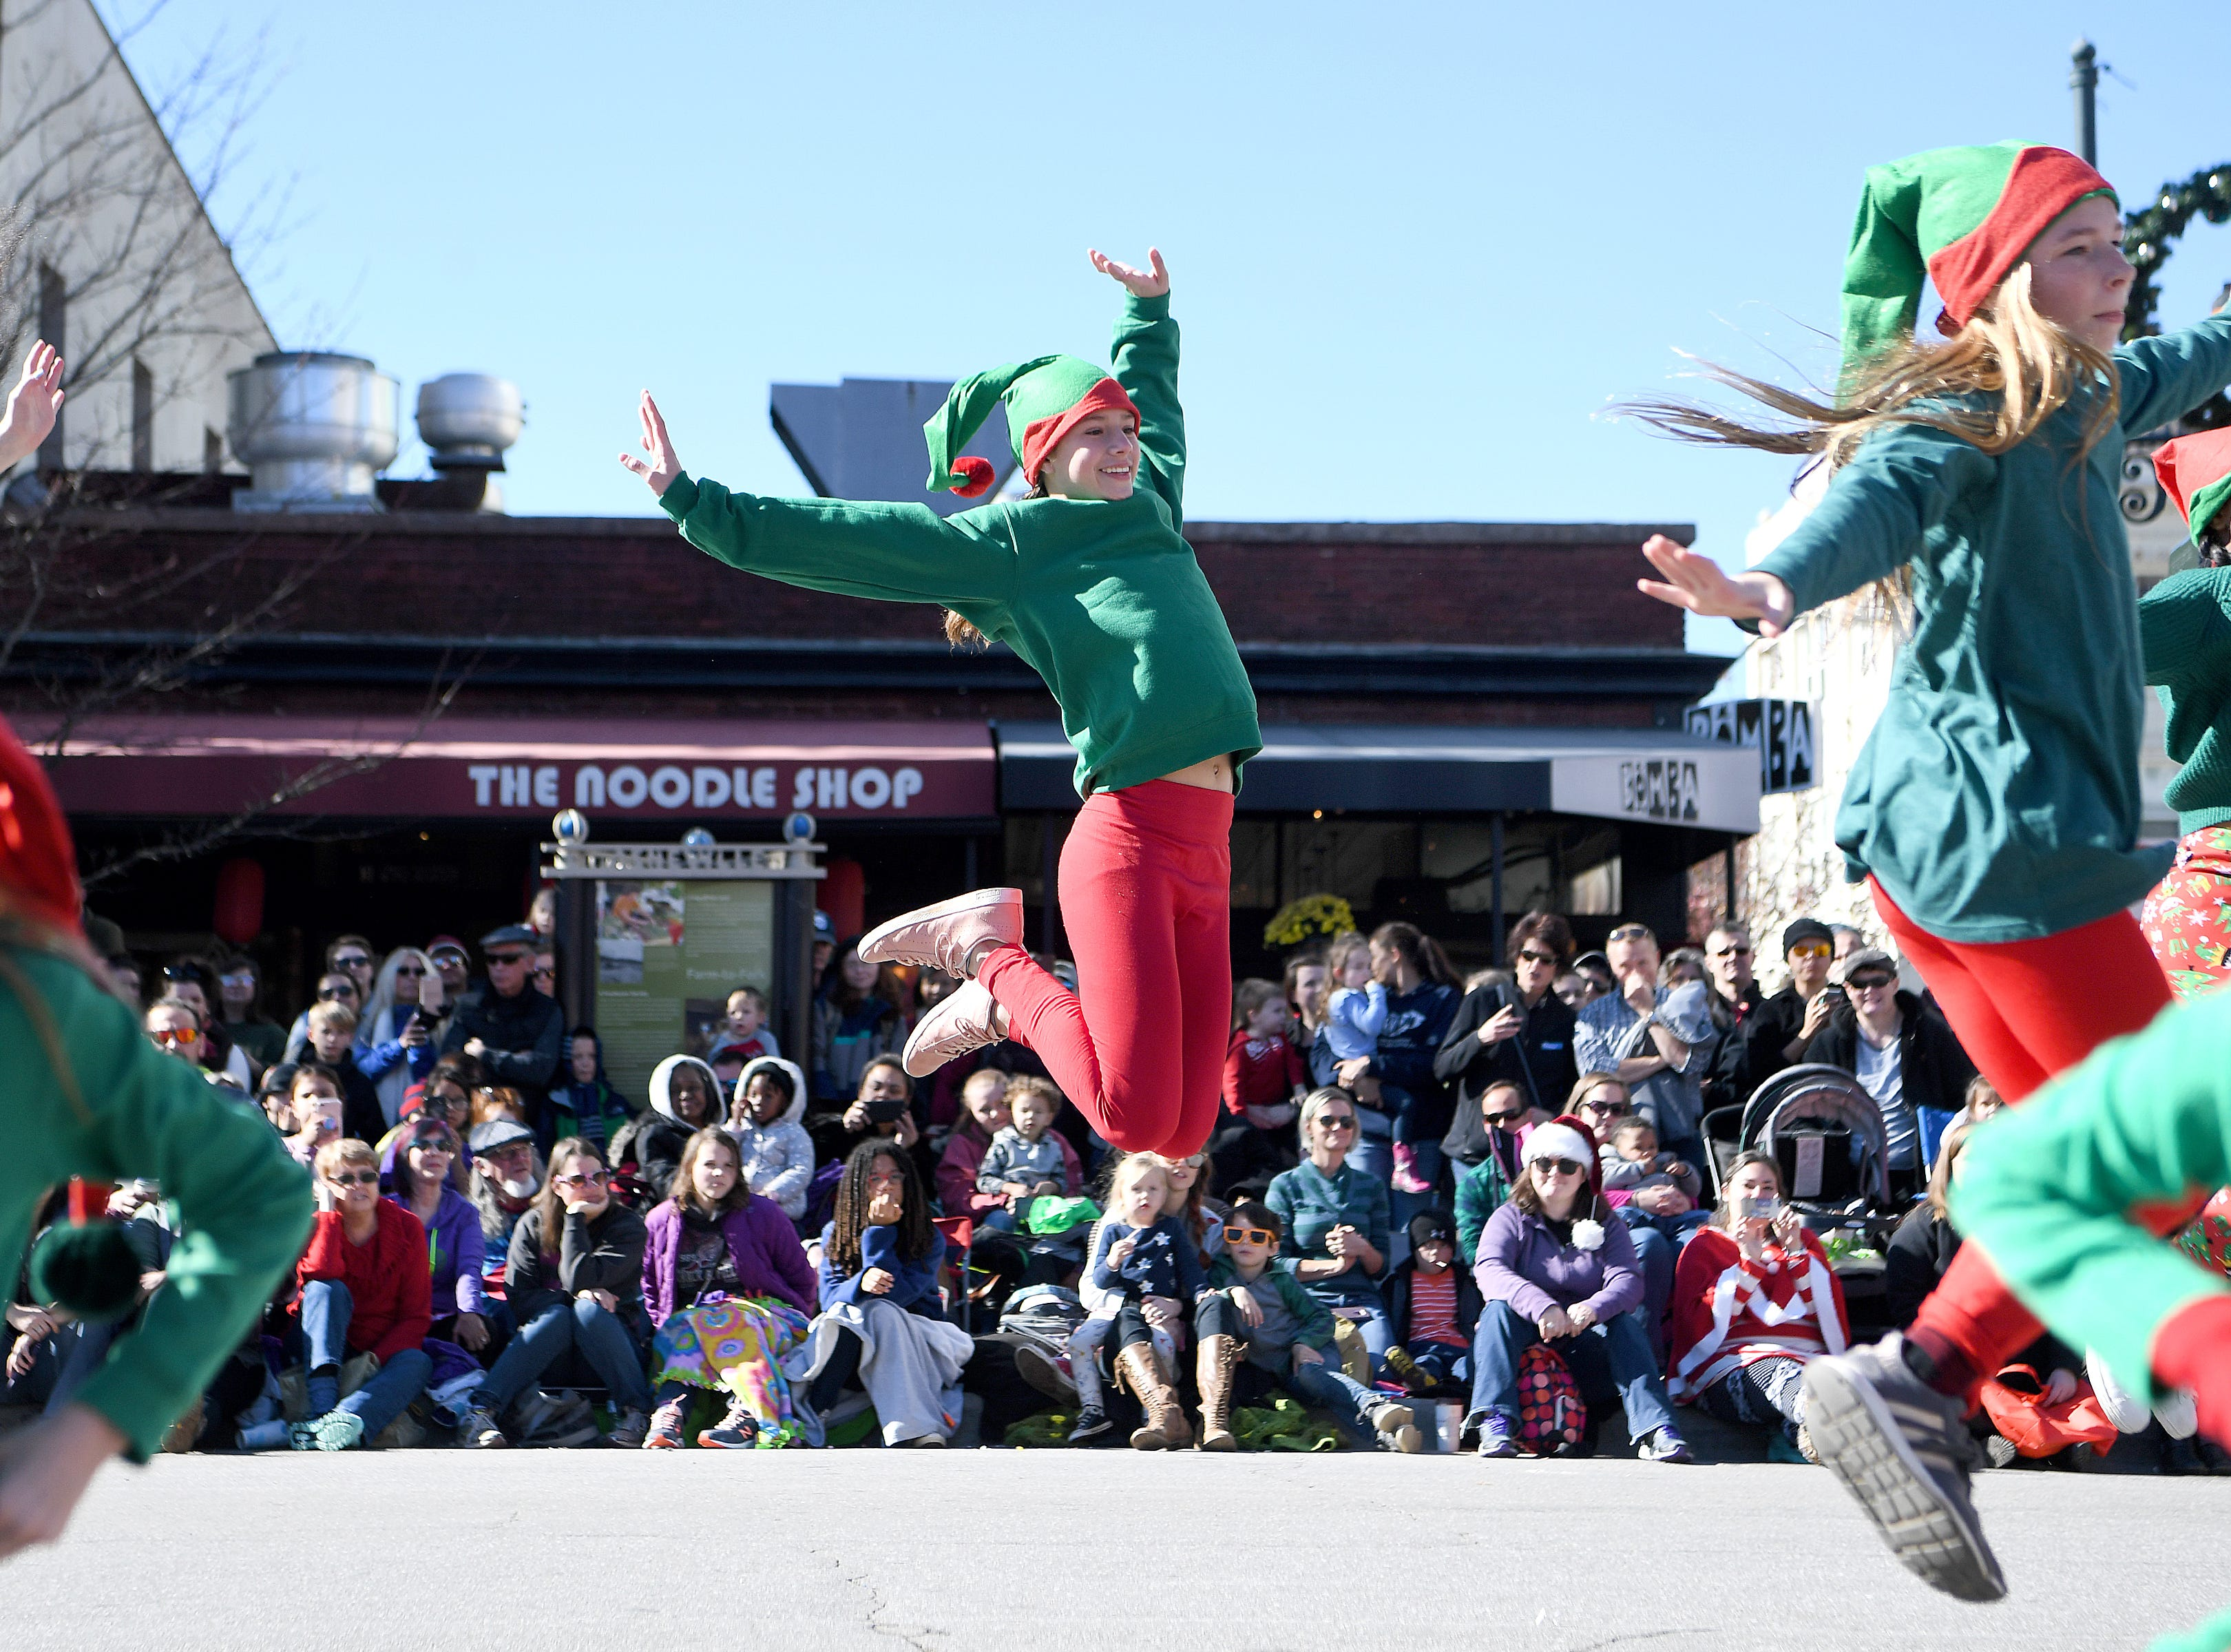 Osega Dream Academy performs for the judges at the corner of Biltmore and Patton Avenues during the 2018 Asheville Holiday Parade on Nov. 17, 2018. More than 100 entries walked through the streets lined with spectators in the parade this year.